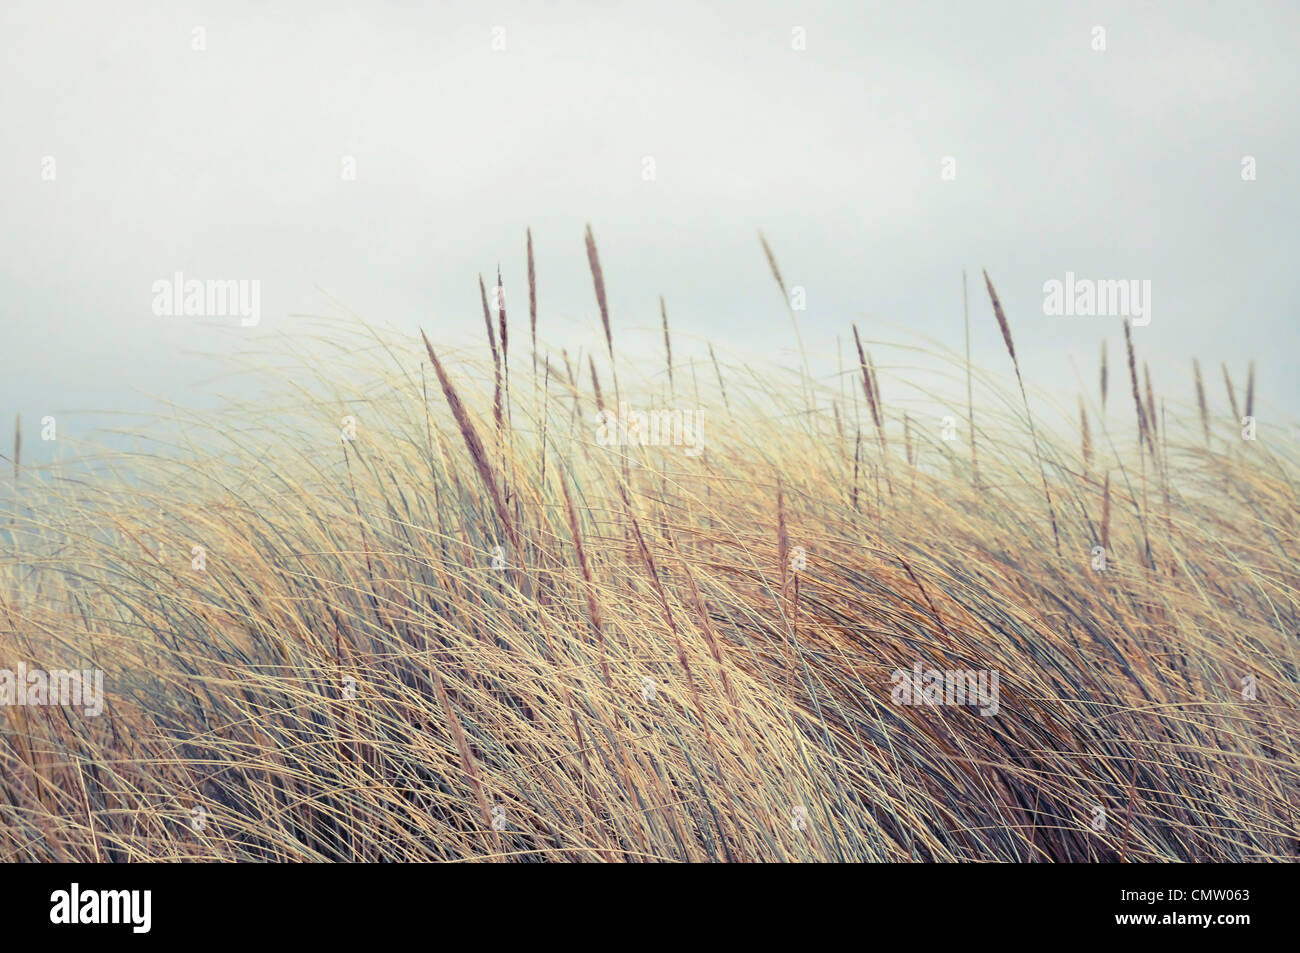 Reeds blowing in wind - Stock Image